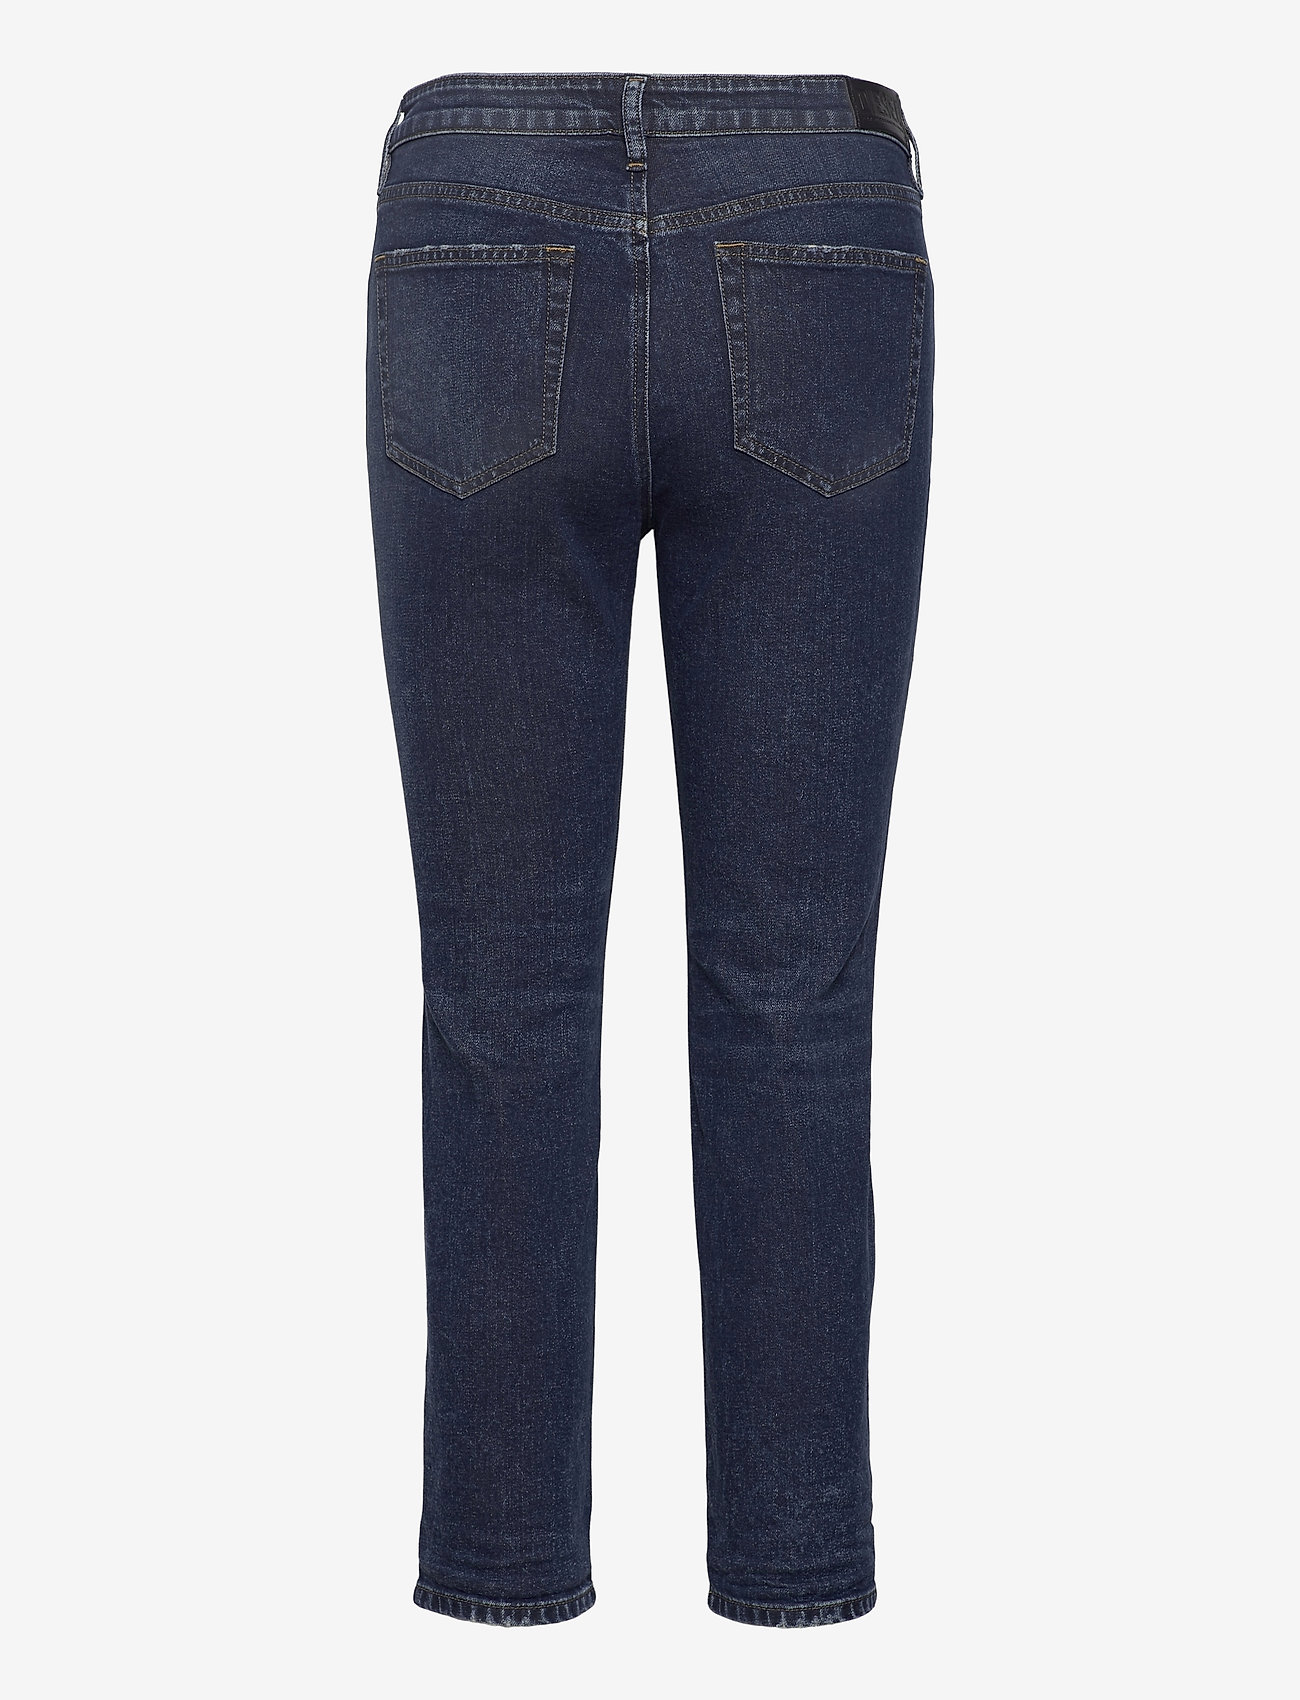 Diesel Women - D-JOY L.30 TROUSERS - straight jeans - denim - 1